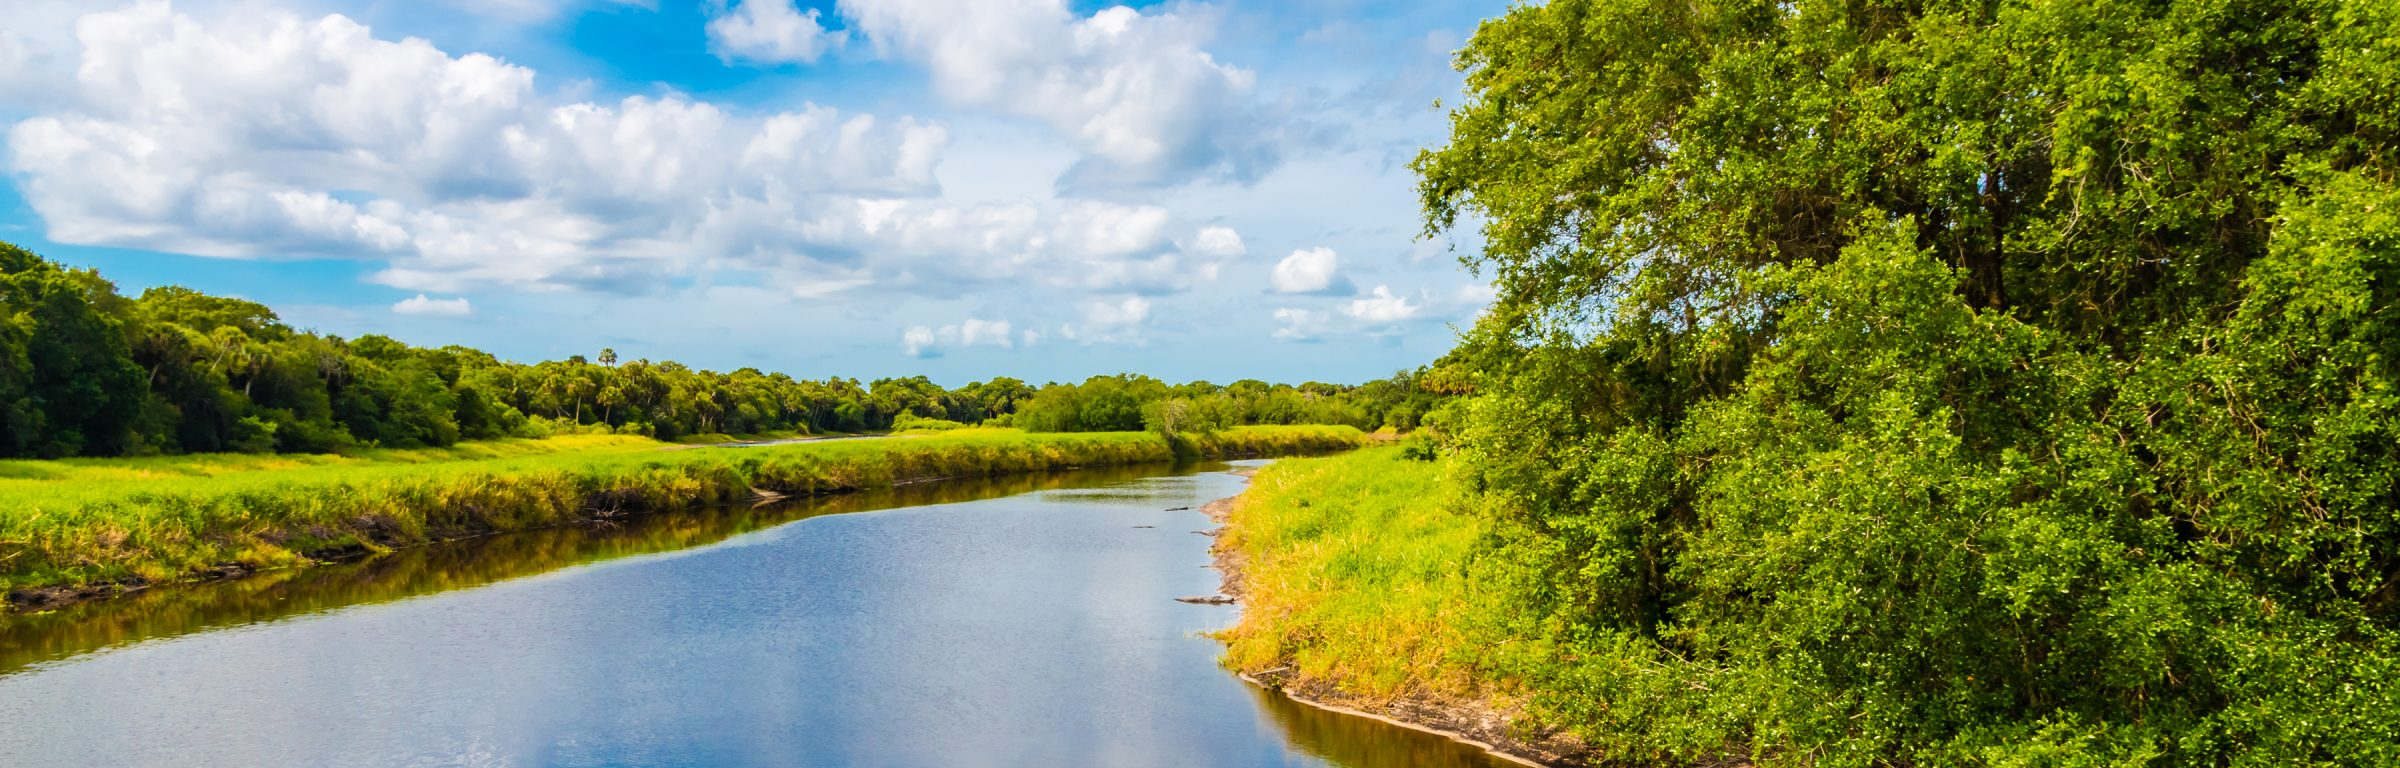 River with alligators at Florida Myakka River State Park. Summer natural landscape, wetland.